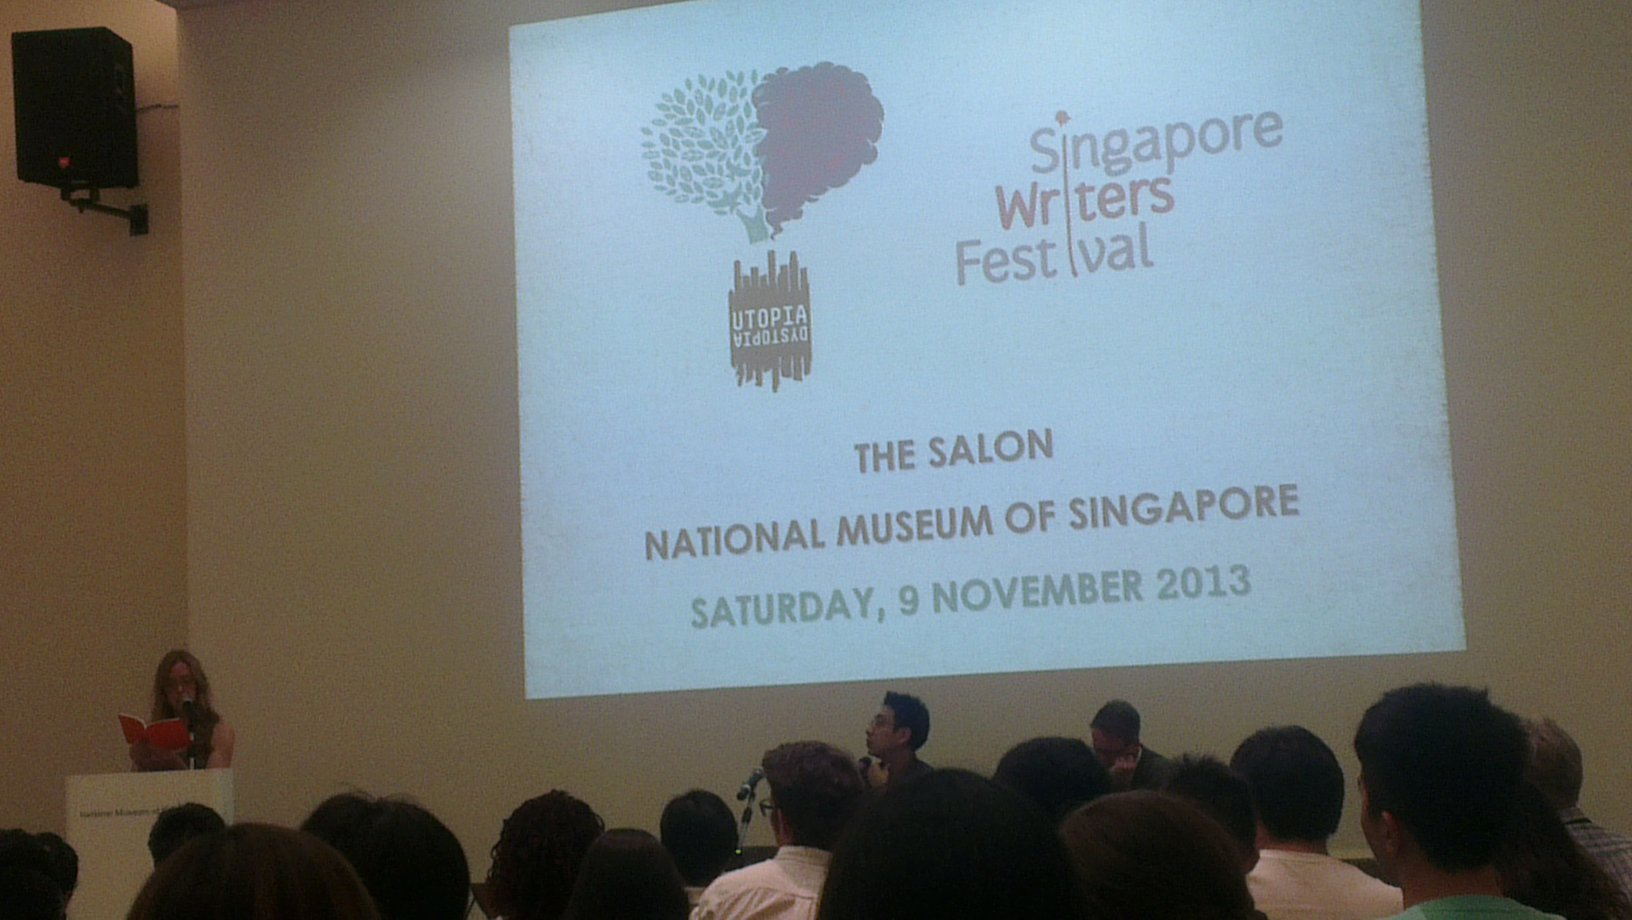 Poetry recitals by Nordic authors during SWF